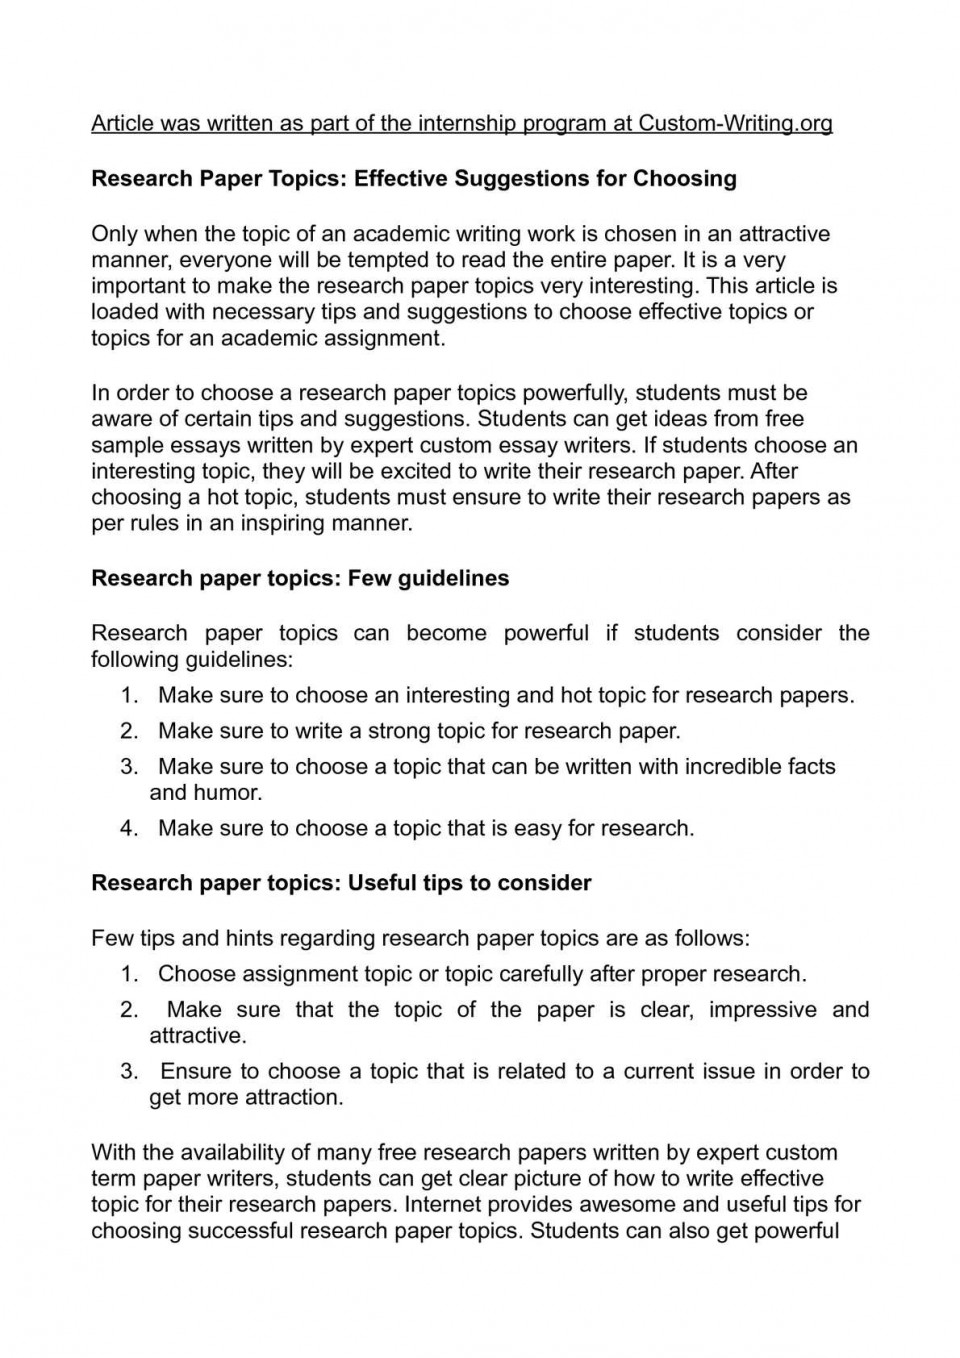 014 Research Paper P1 Topics On Unusual Papers For Related To Education In World History Good 960